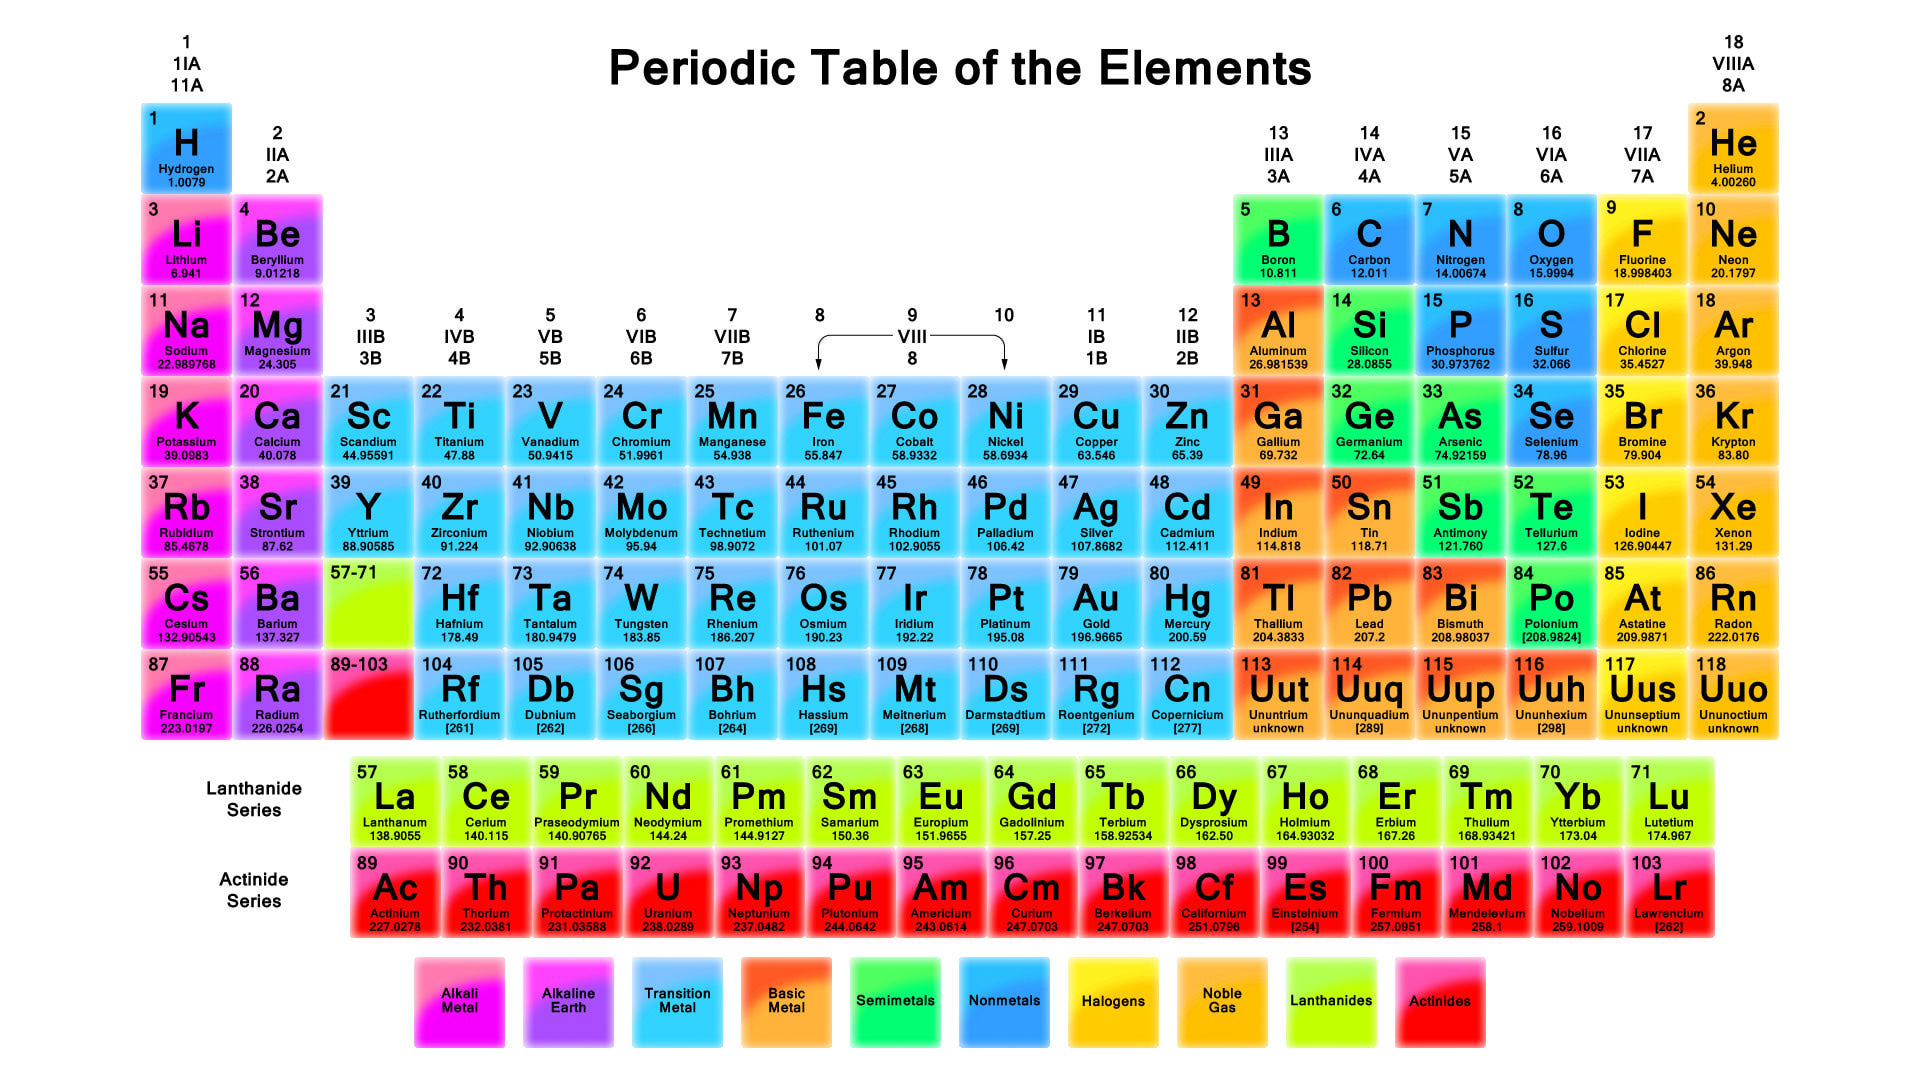 periodic-table-of-elements-with-names-periodic-table-of-the-elements-typically-provides-the-elemen-wallpaper-wpc9008420